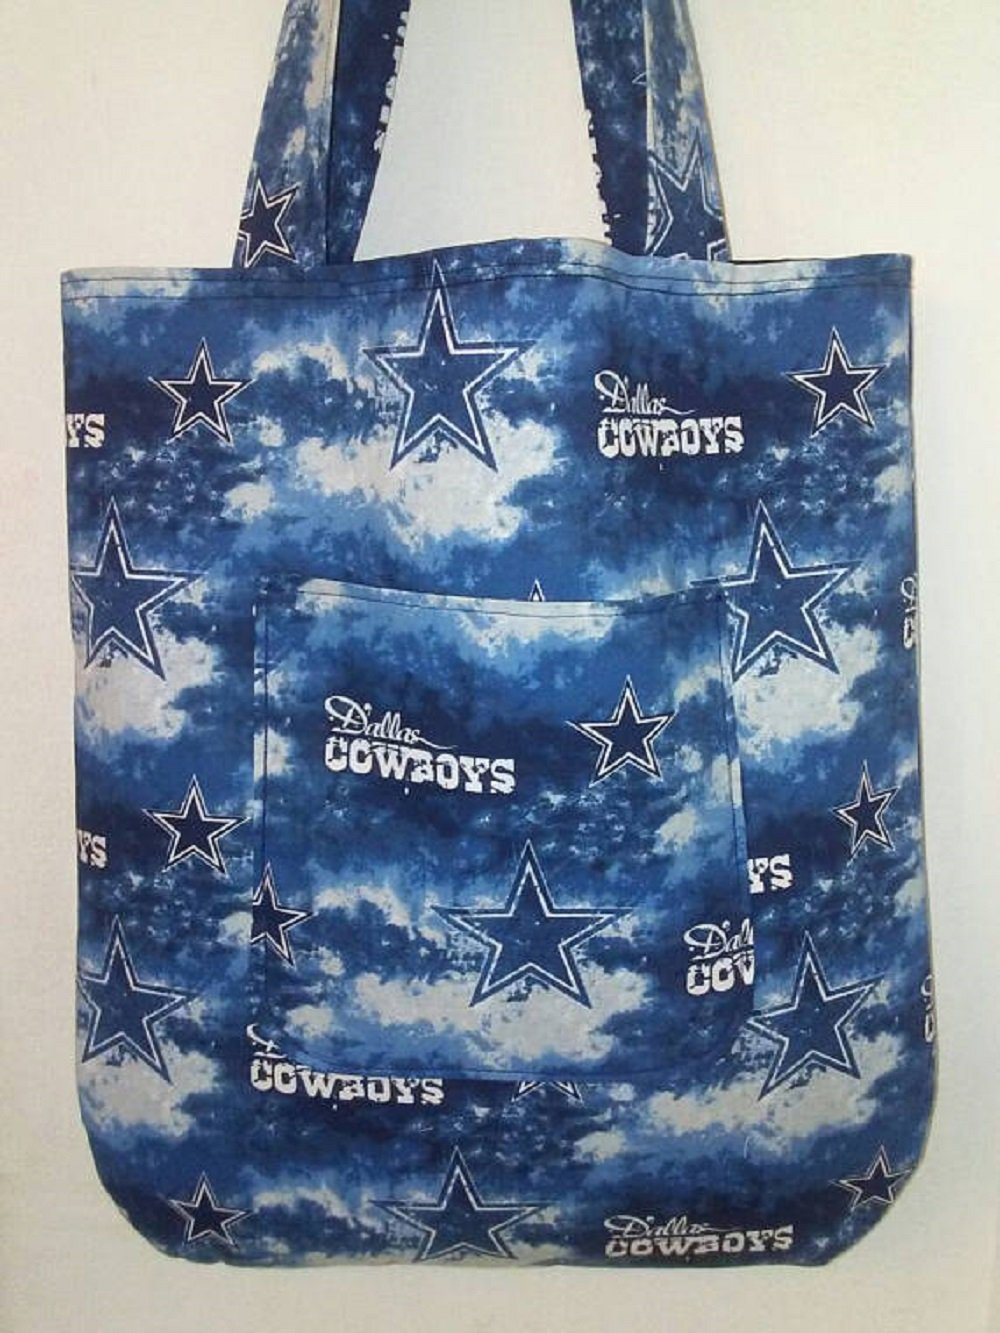 Dallas Cowboys and Stars Inspired Handmade Tote